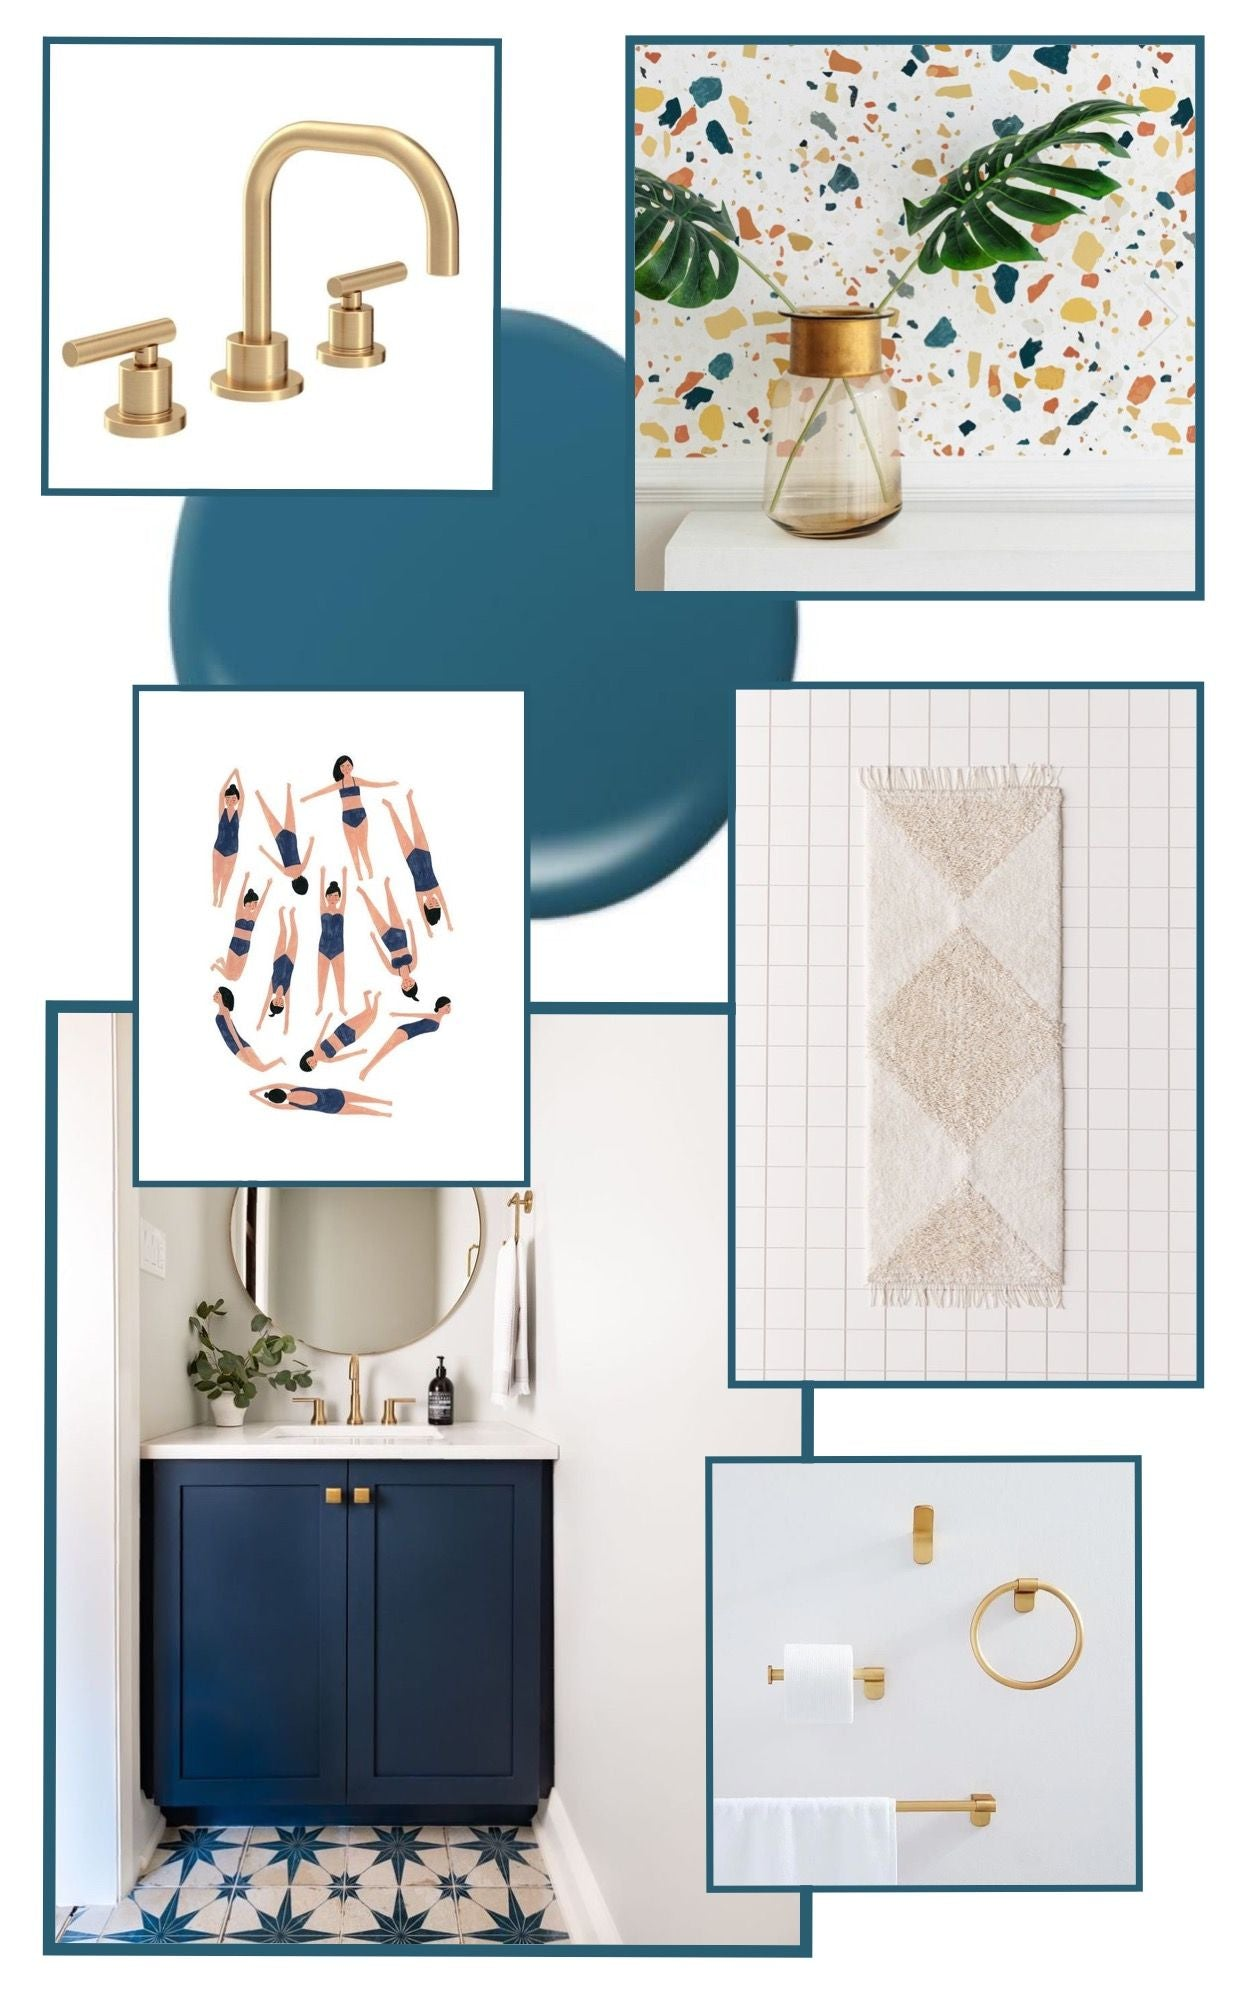 Interior project mood boards for inspiration